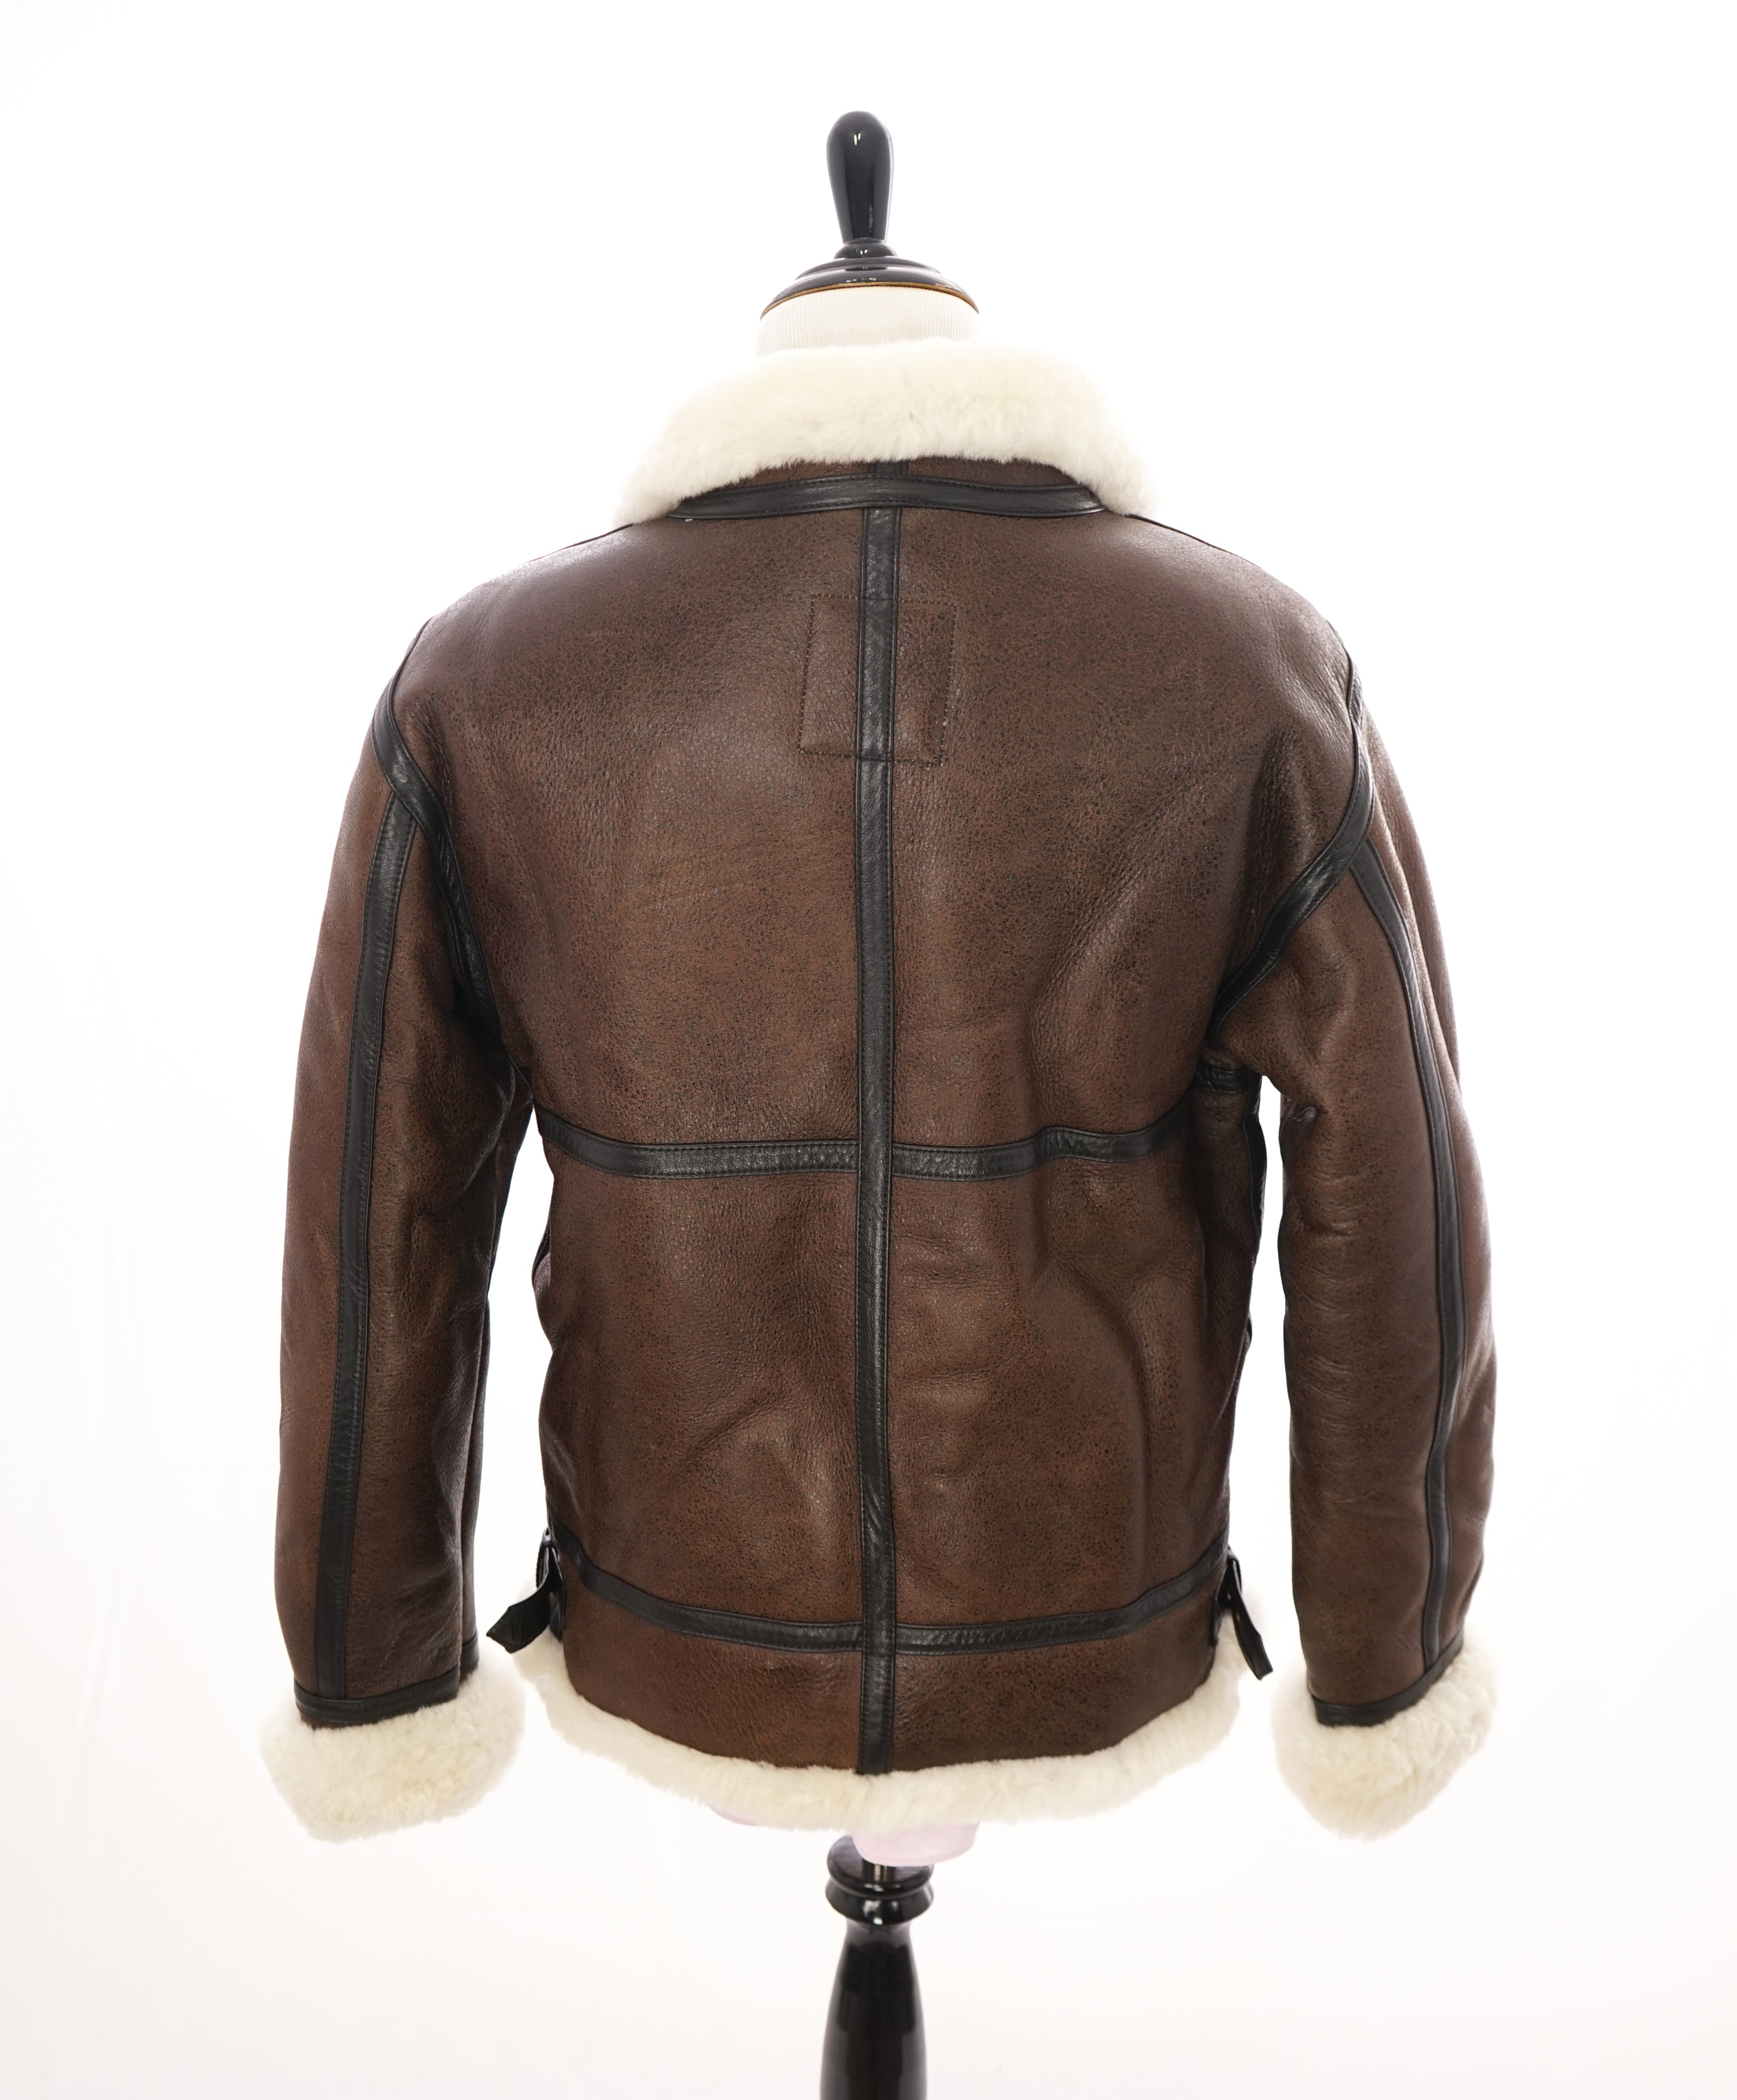 ALPHA INDUSTRIES - Classic Shearling Bomber Jacket Coat B-3 - Small